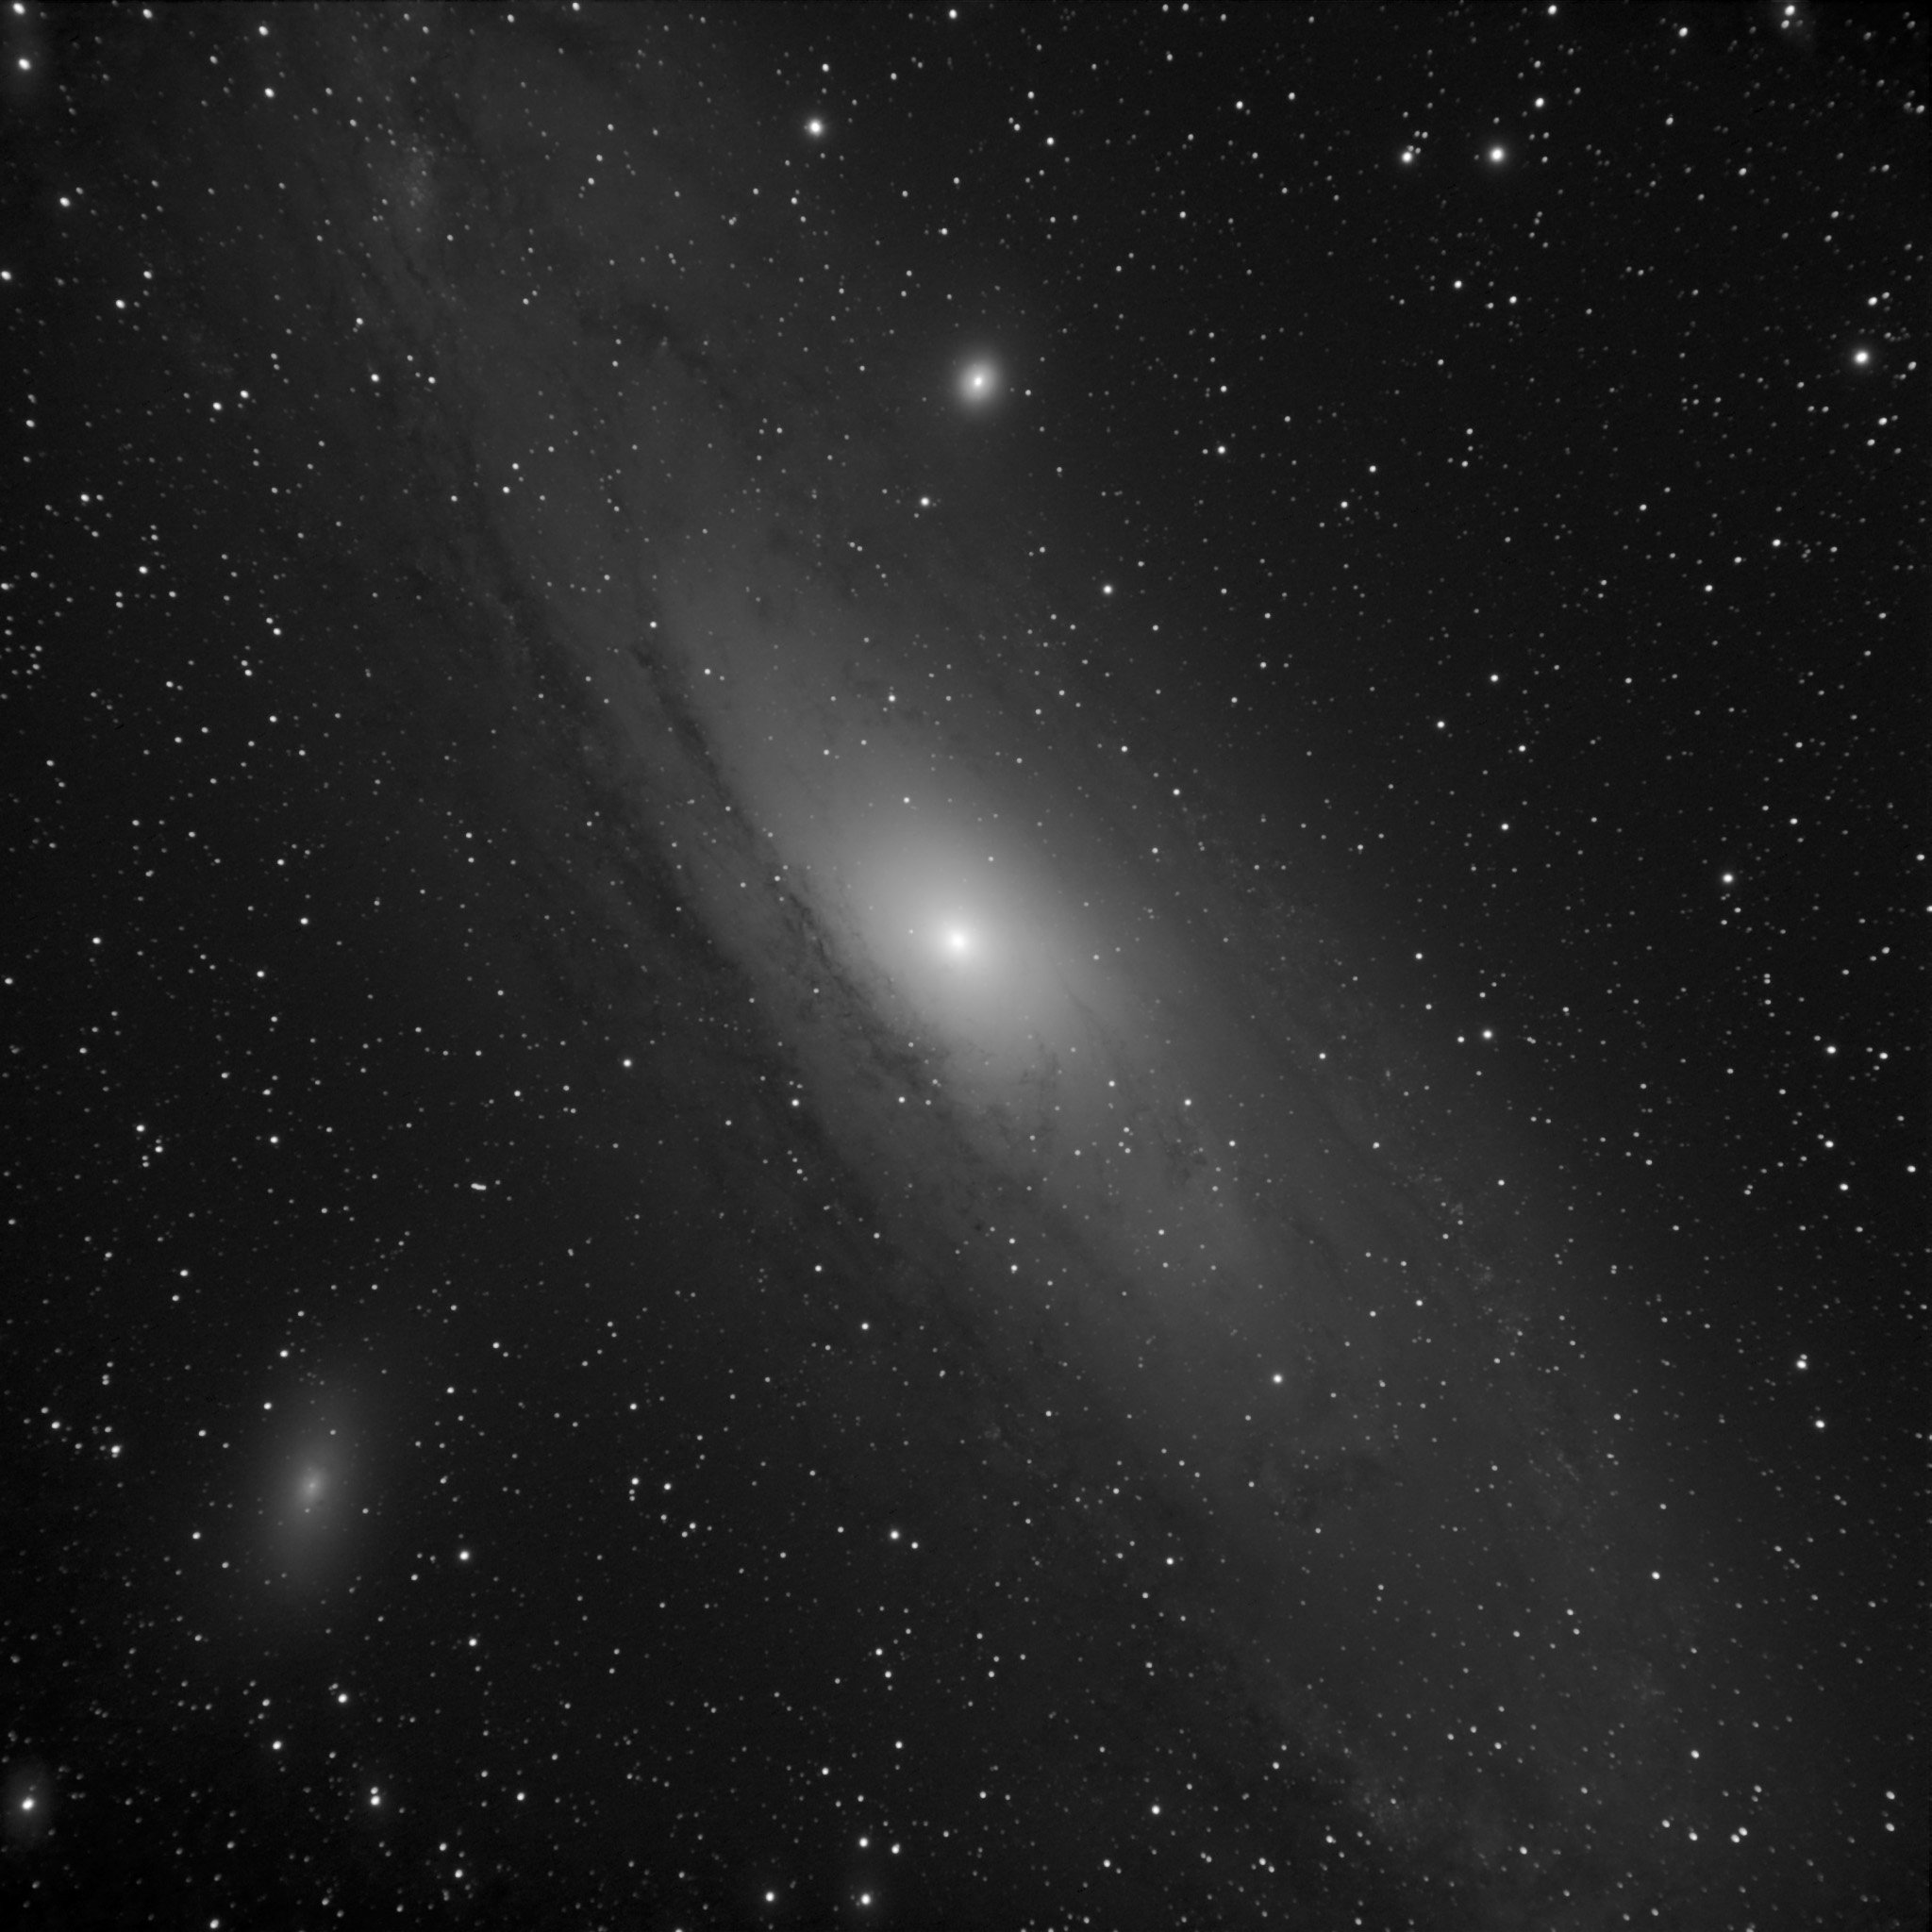 The Great Galaxy in Andromeda, M31, with M32 and M110 nearby